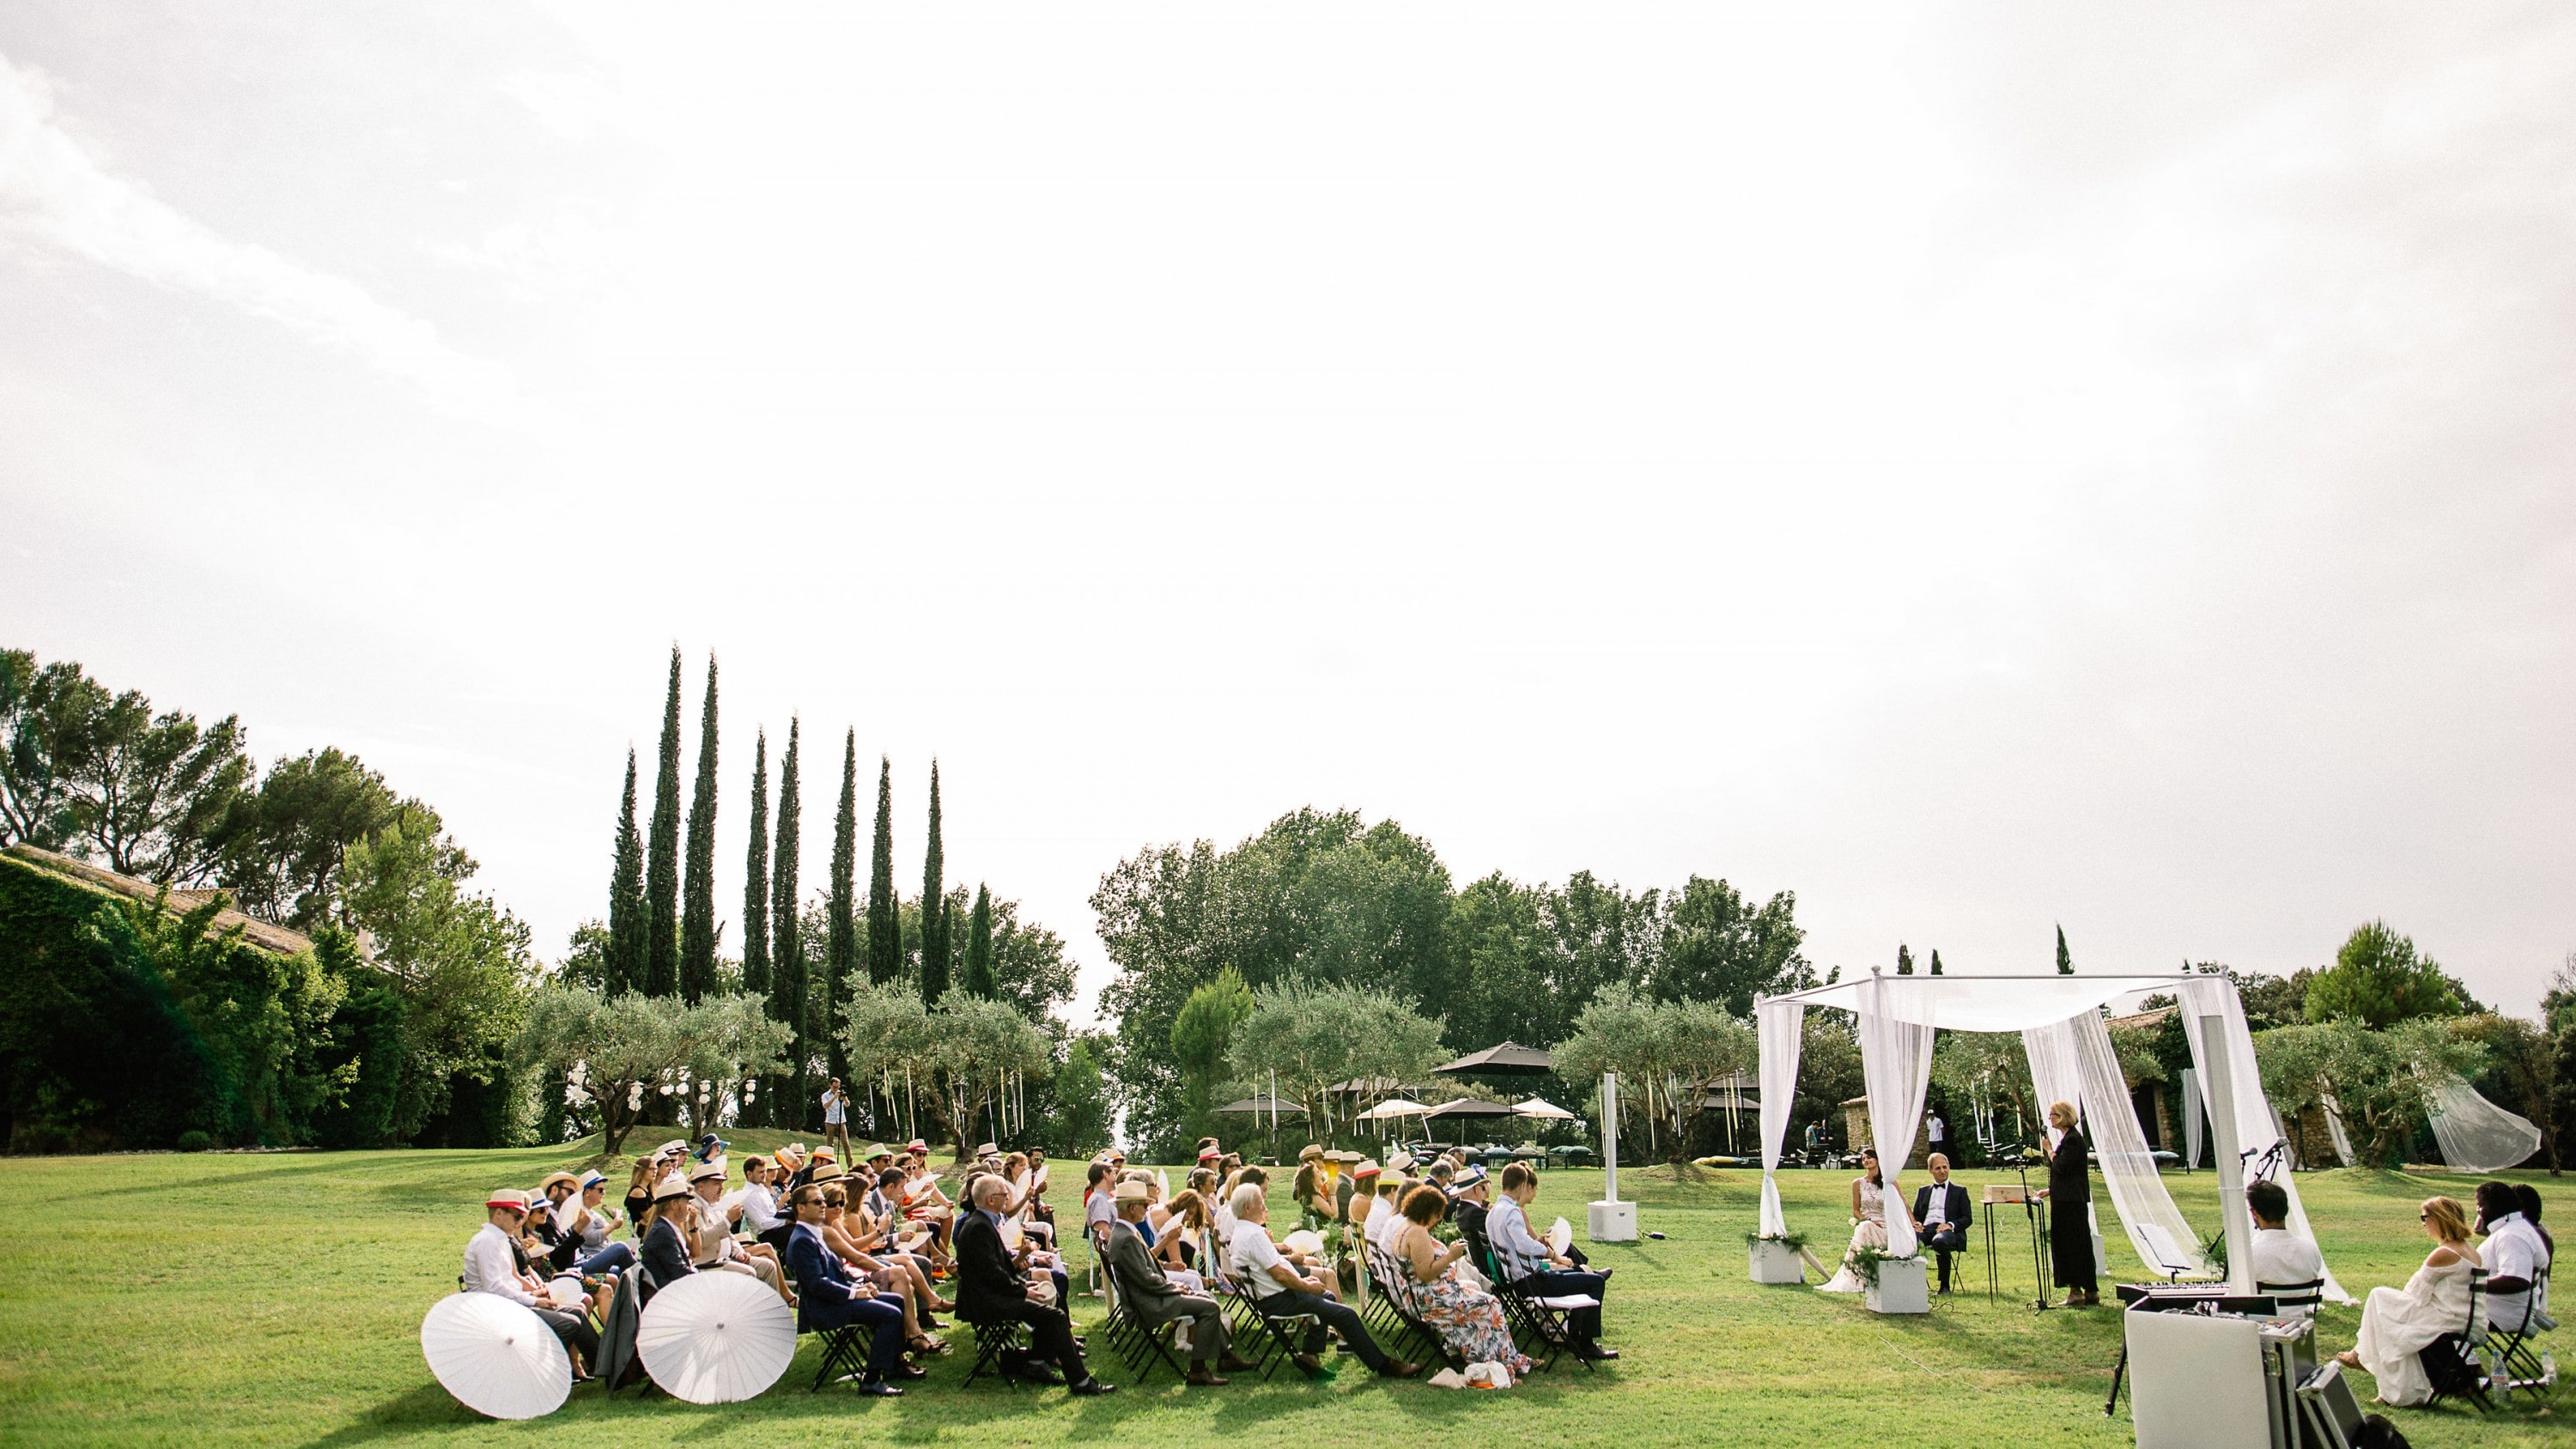 wedding-ceremony-outdoor-frederique-nicolas-10-3000x1688-min